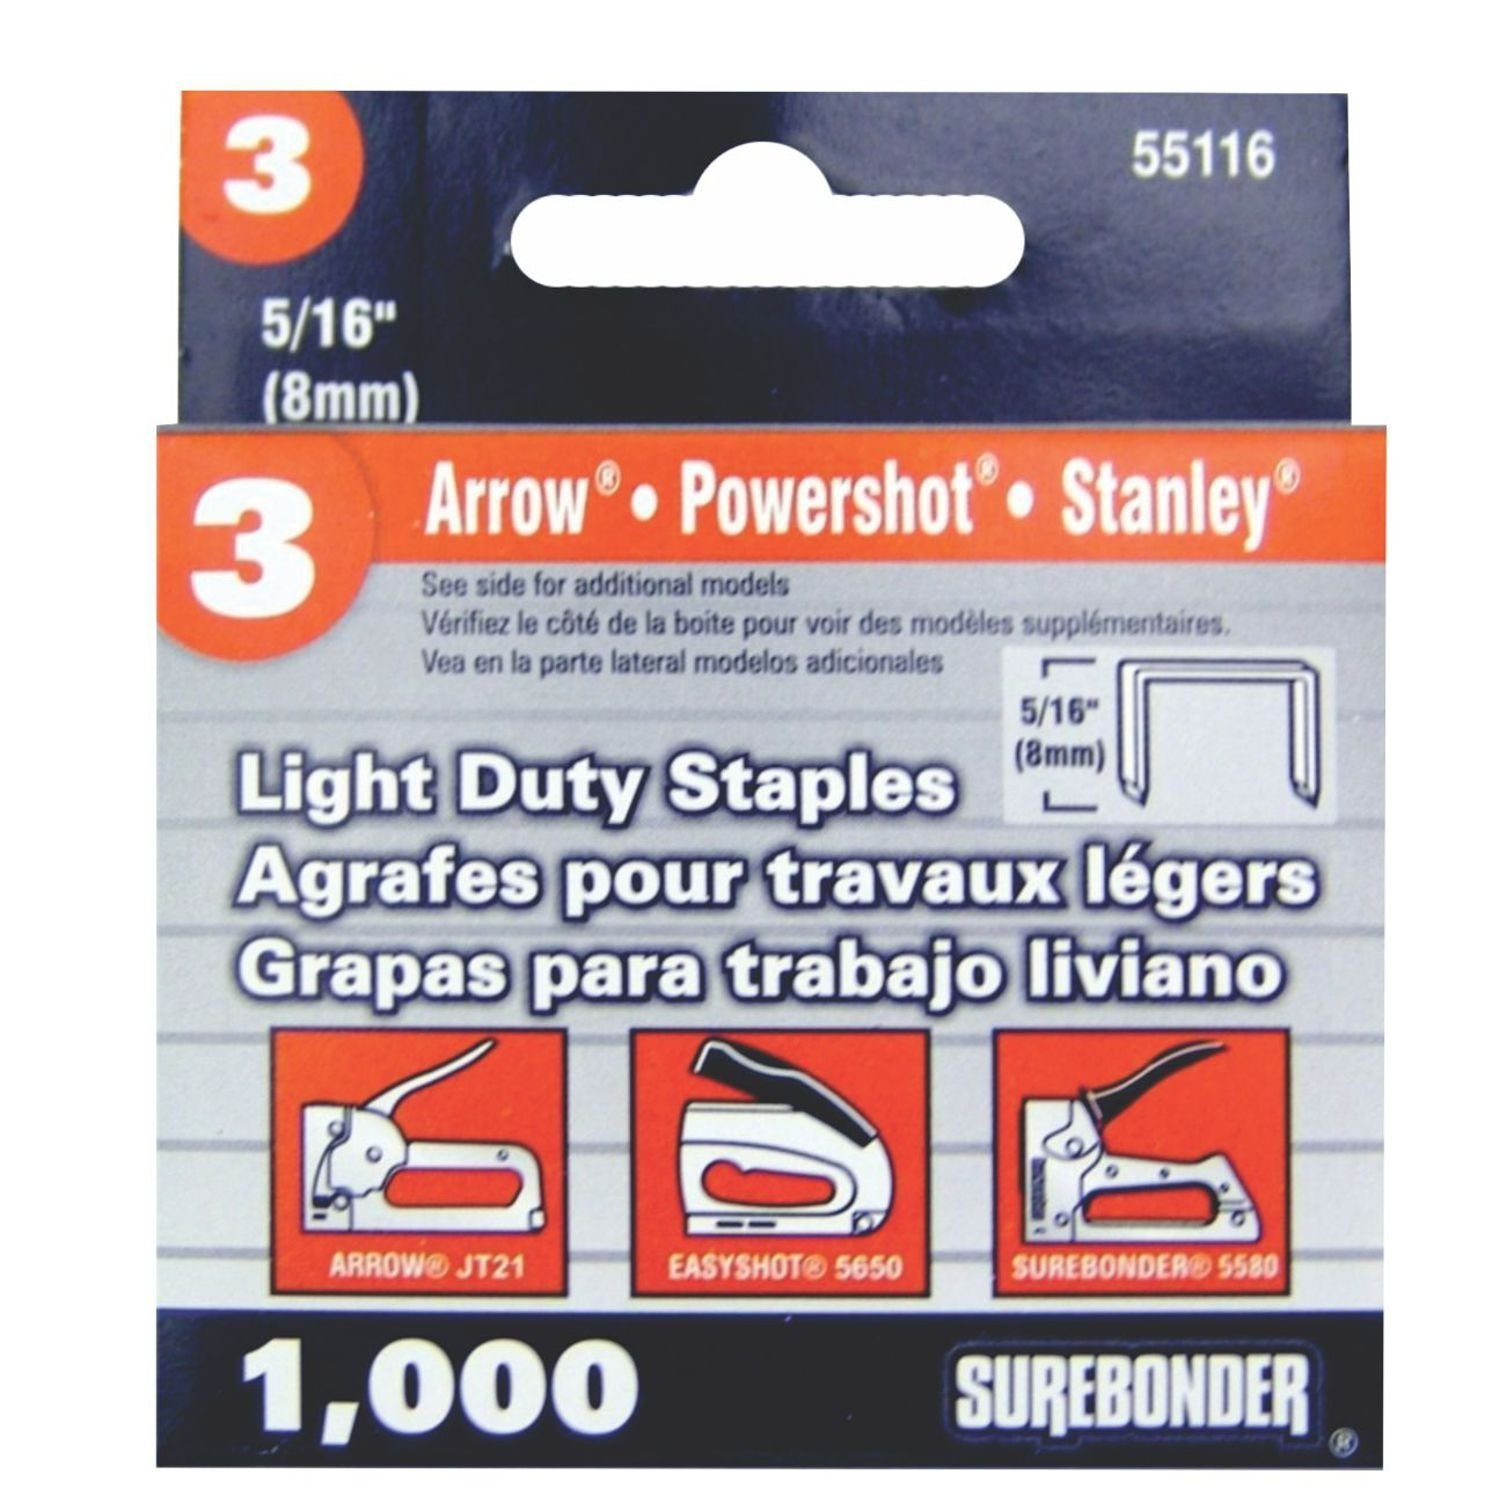 Light Duty, Chisel Point, 5/16 Arrow JT21 Type Staple, 1000/Box, 5 Pack by Surebonder